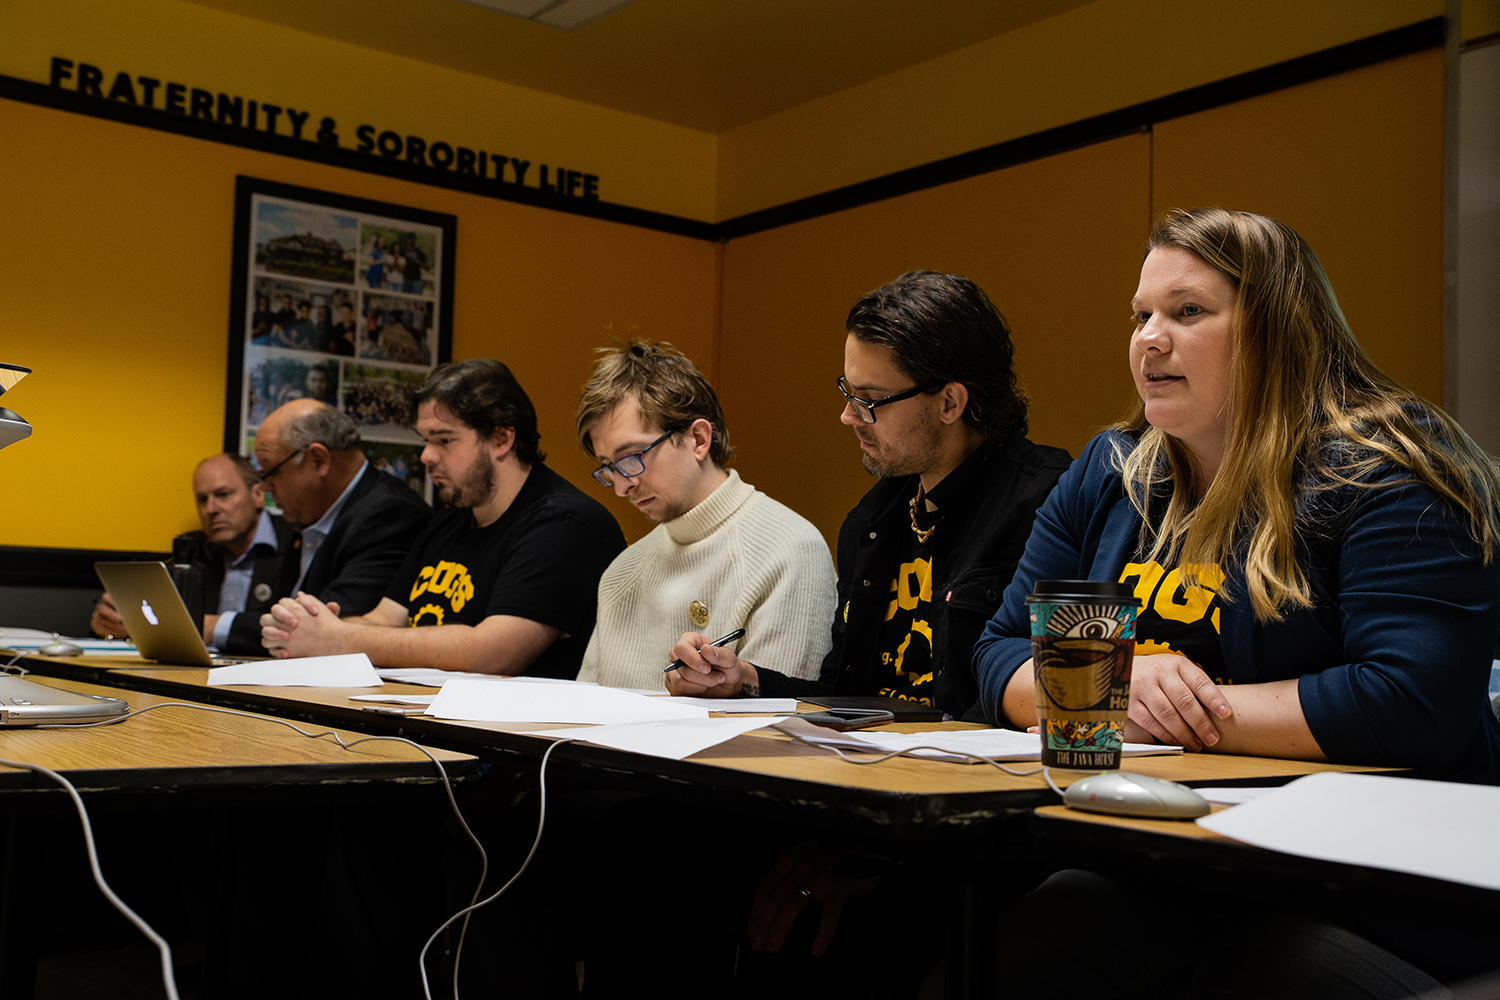 COGS members read their proposal to the Iowa Board of Regents Bargaining Committee during the COGS policy proposal meeting on Wednesday, November 28, 2018. The COGS policy proposal aims to solidify salaries, hours of work, benefits, and other terms and conditions for graduate students.